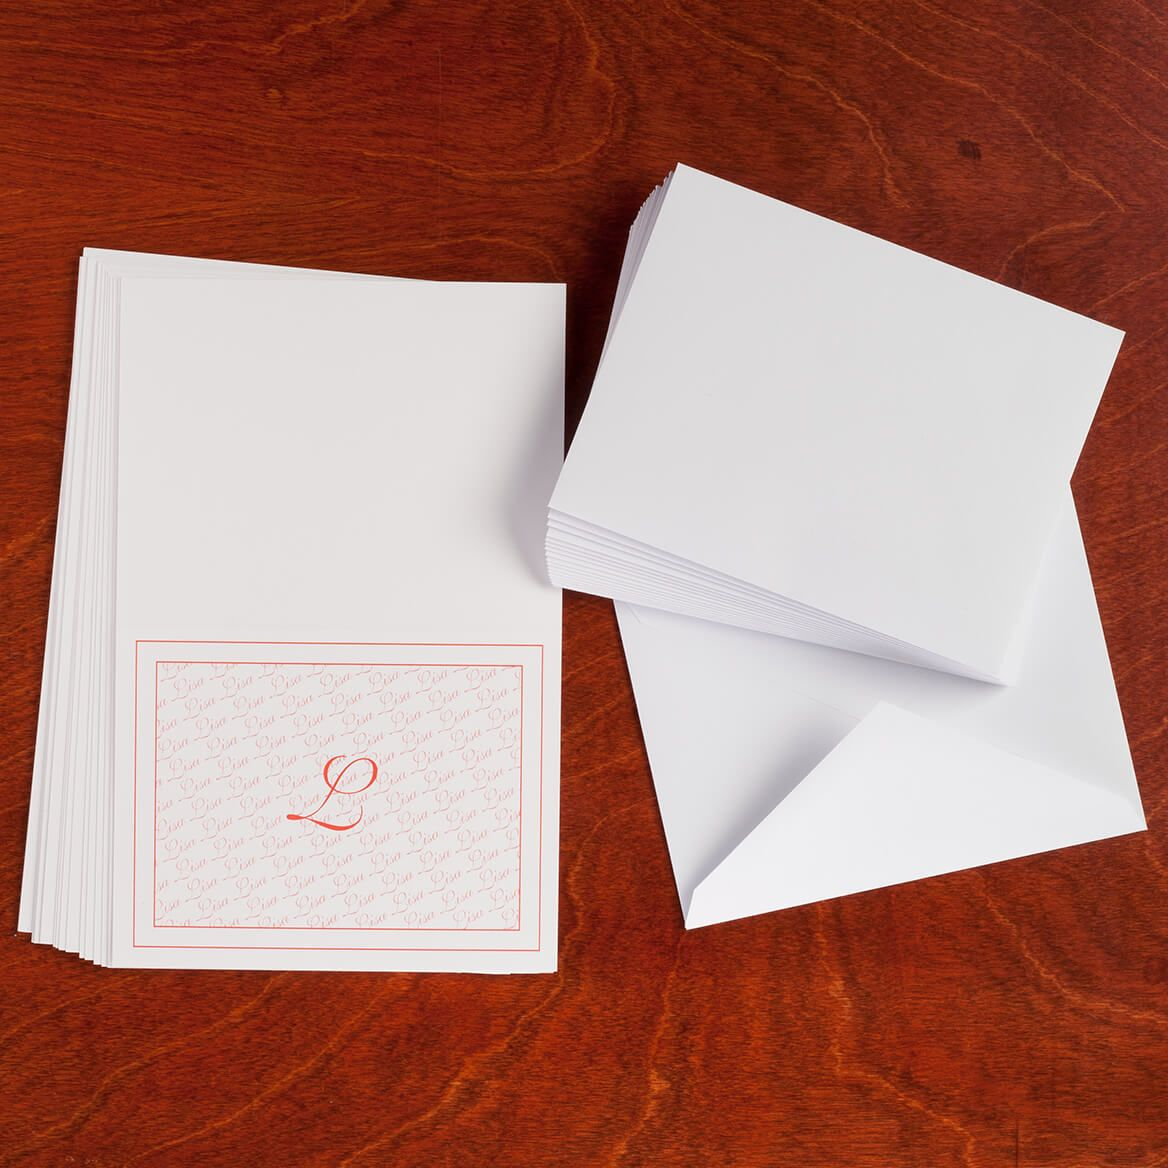 Personalized Monogrammed Note Cards, Set of 25-346845